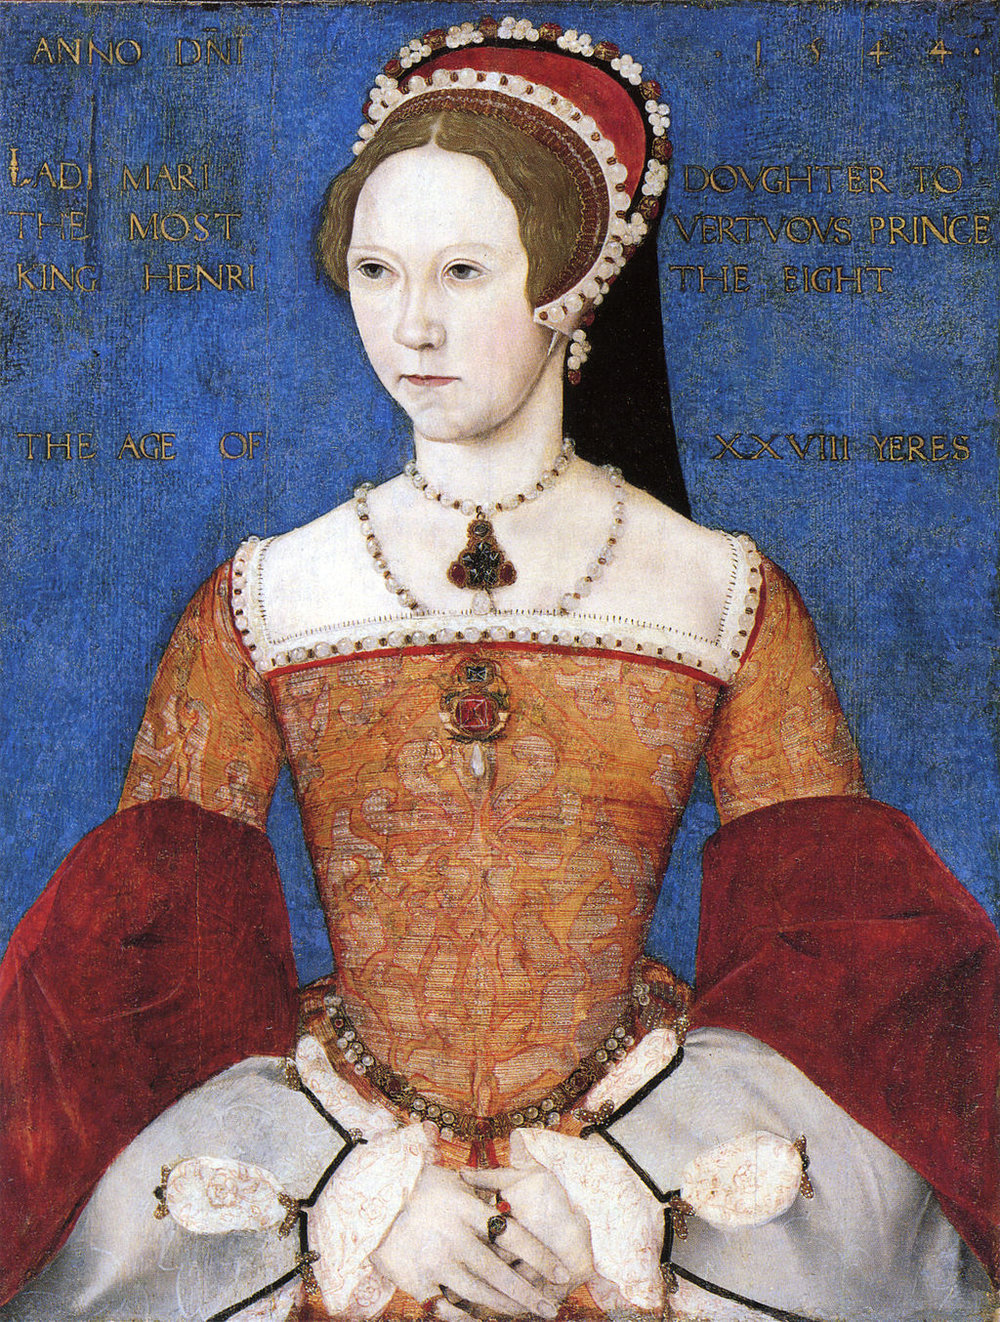 Mary I as painted by Master John in the 1540s.